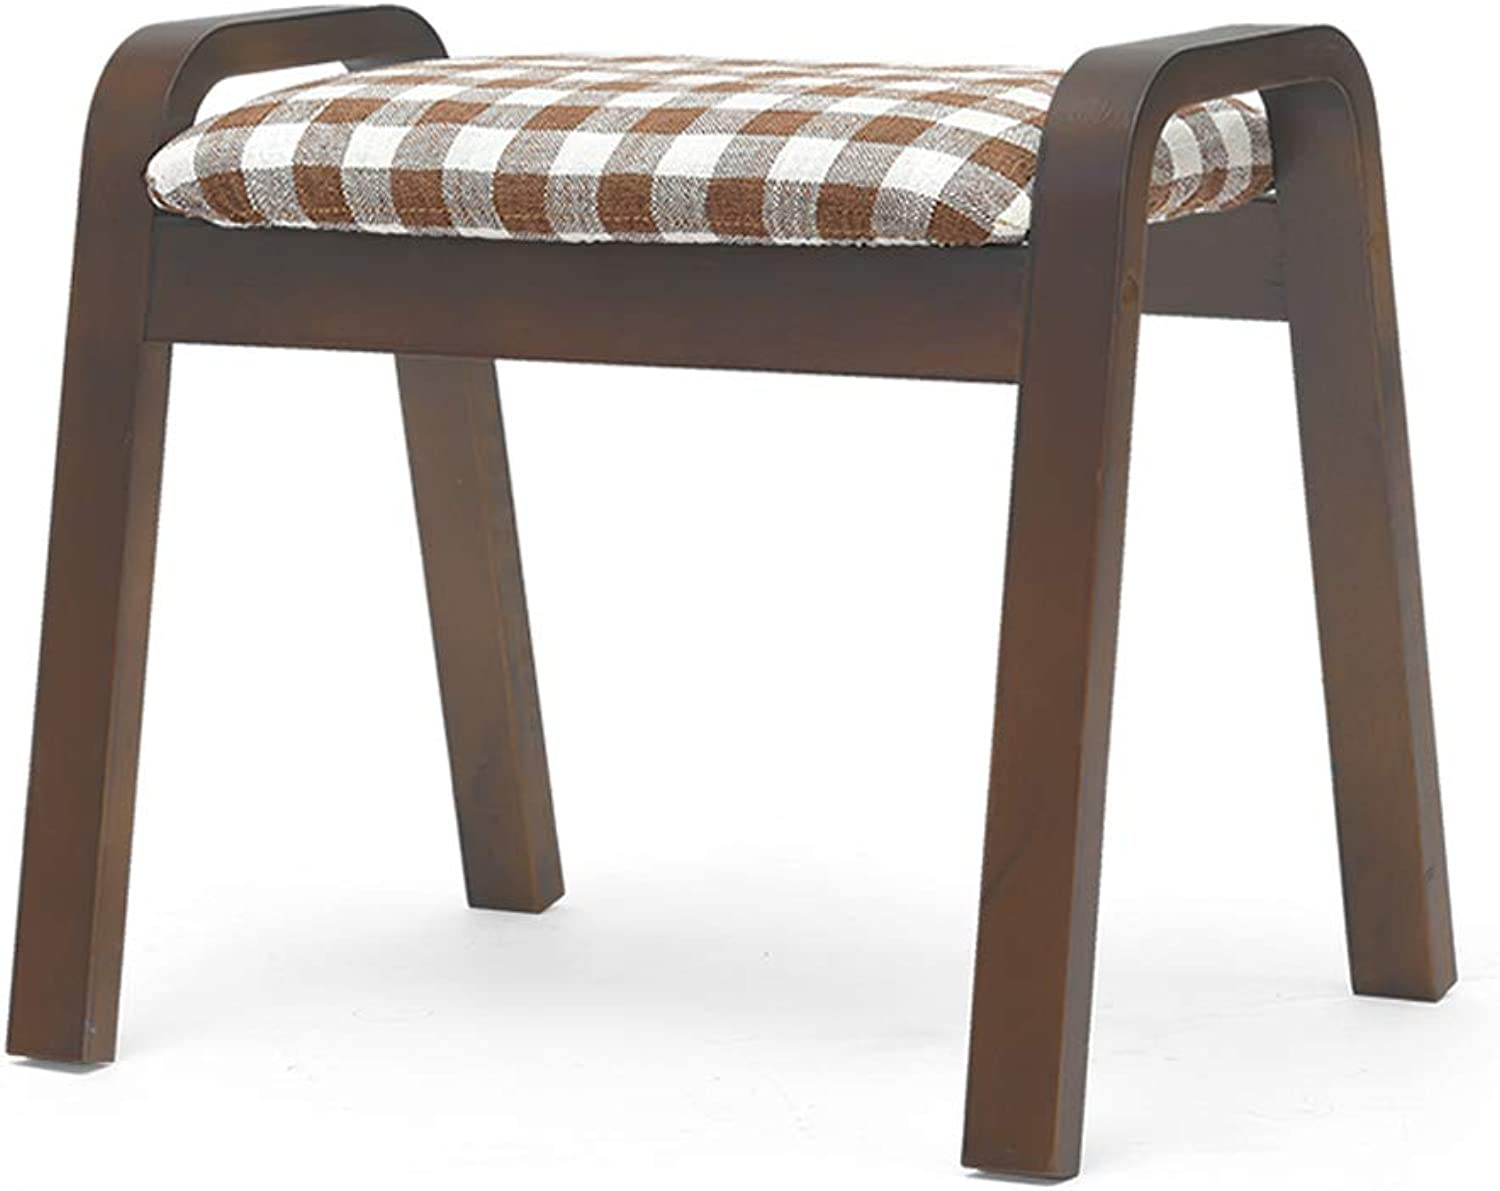 CQ Home Stool Creative Stool Living Room Adult Solid Wood Bench Fabric Stool Sofa Change shoes Bench Brown Chair Leg